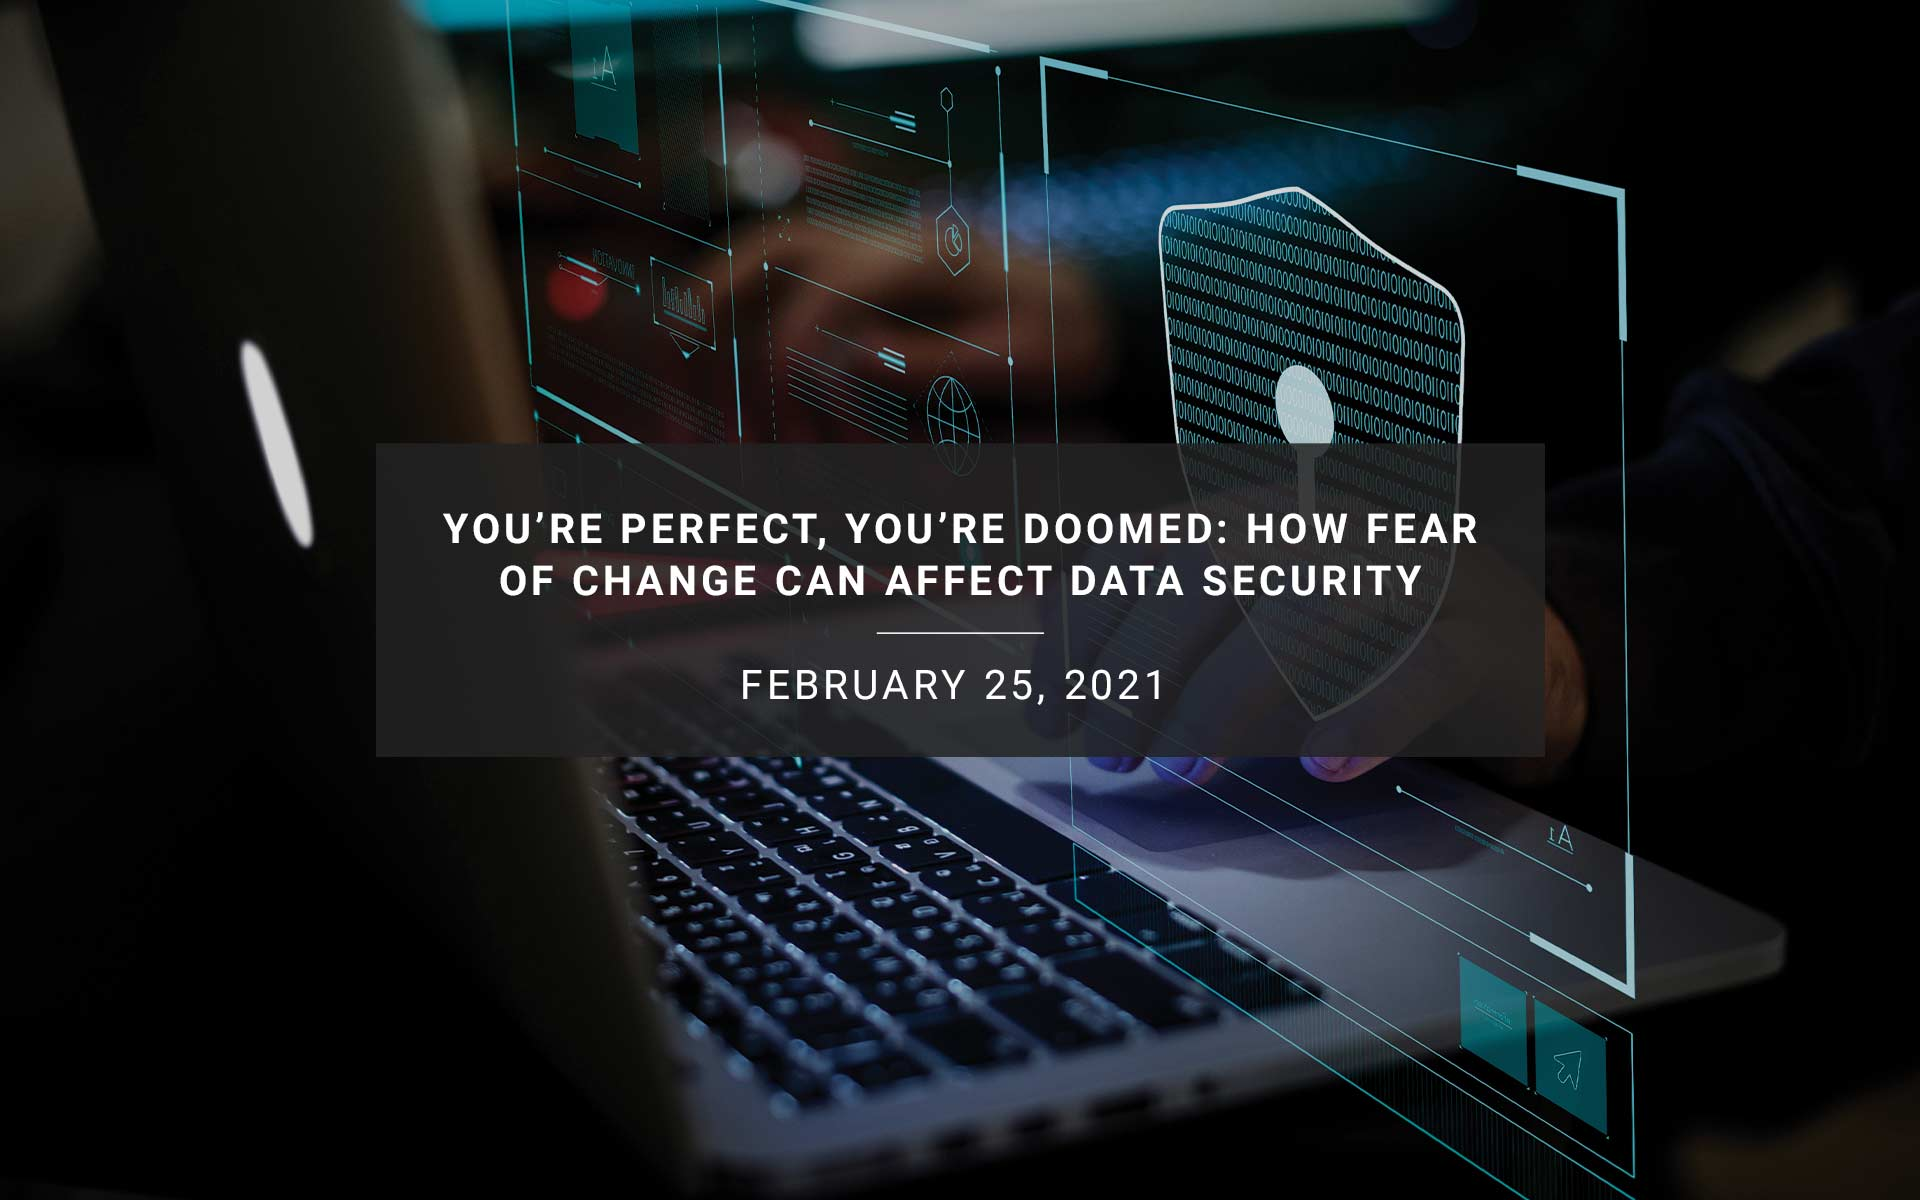 You're Perfect, You're Doomed: How Fear of Change Can Affect Data Security | New Resources Consulting